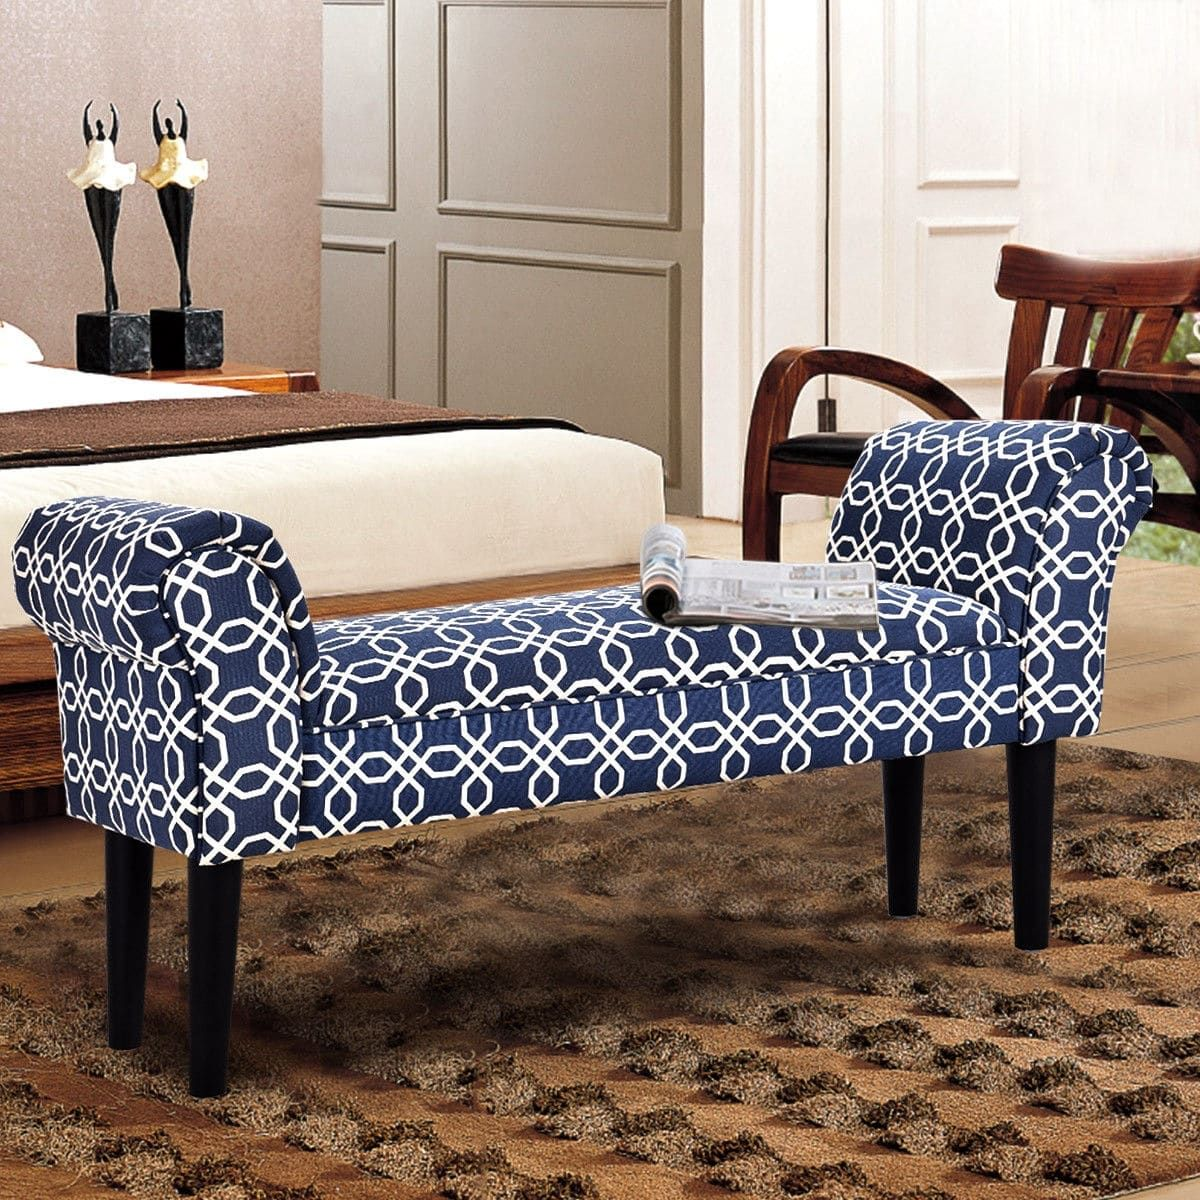 Phenomenal Costway Upholstered Armed Bed Benches For Bedroom Entryway Spiritservingveterans Wood Chair Design Ideas Spiritservingveteransorg